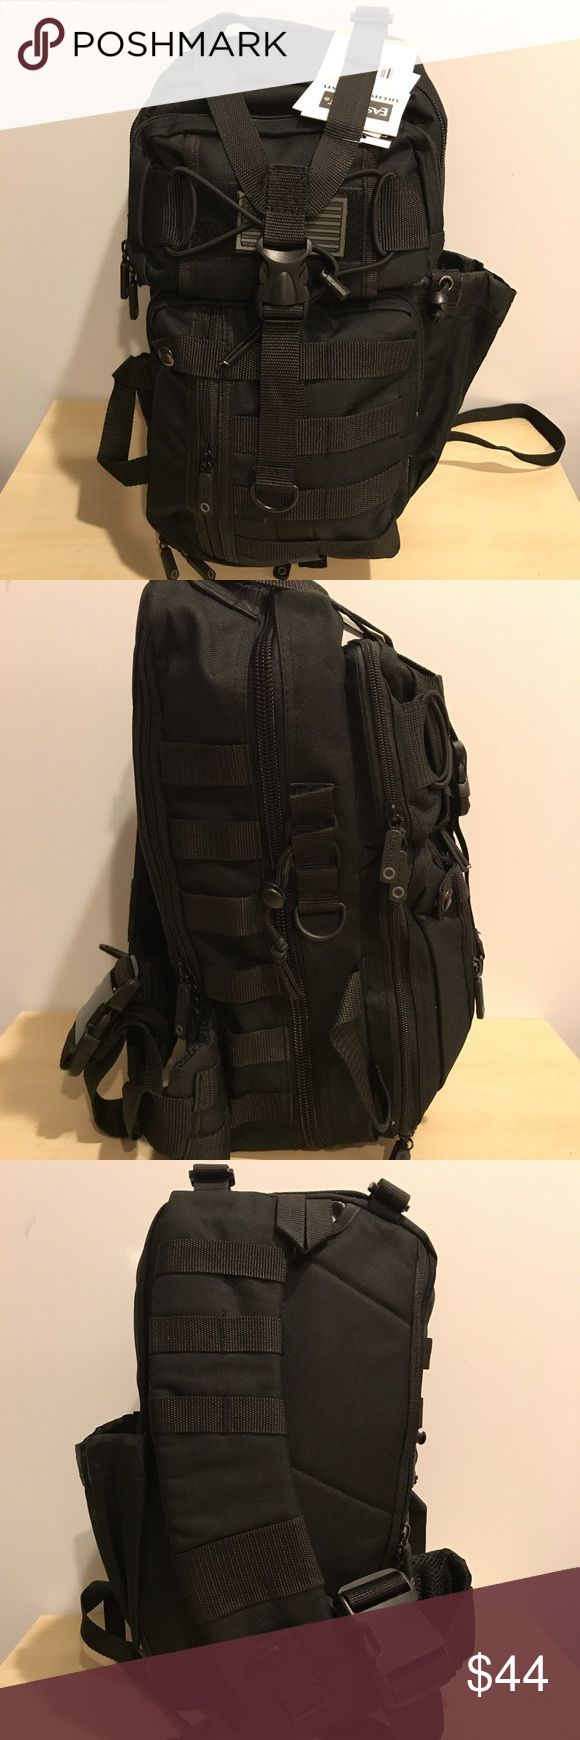 Black tactical Sling Bag oneshoulderstrapcrossbody Tactical Molle Assault Sling Shoulder Cross Body One Strap Backpack  3 zippered front, 1 zippered main, 1 zippered hydration rear pocket, free American flag patch MOLLE straps, D rings, single padded strap Y shaped front, side, and bottom load compression straps Bags Backpacks